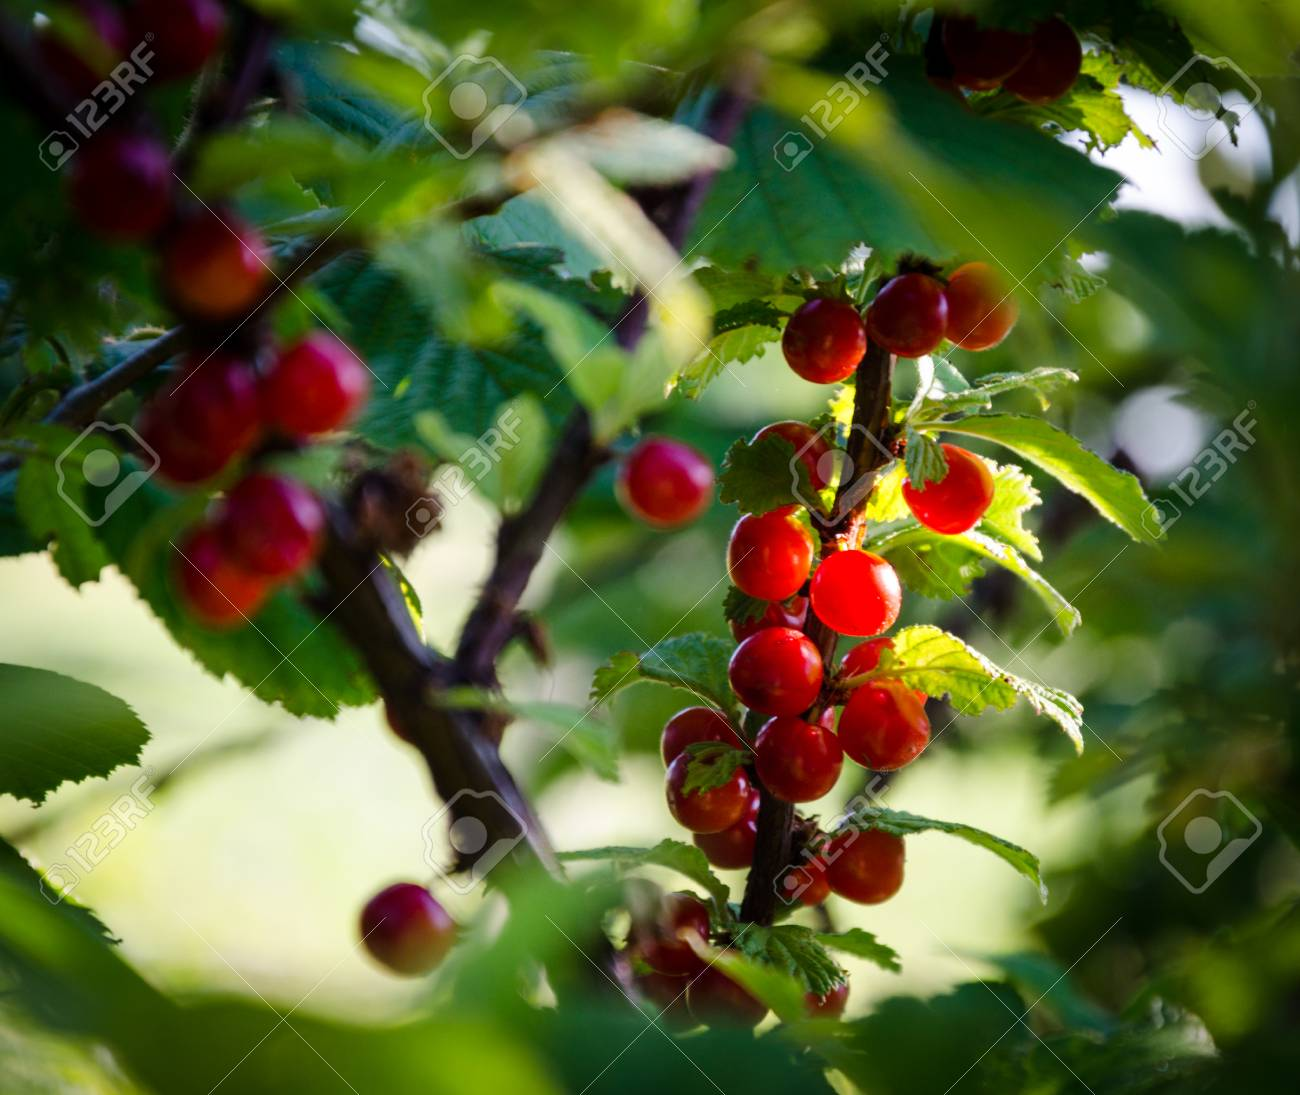 Green Shrubs With Red Berries Currants On Branches Stock Photo